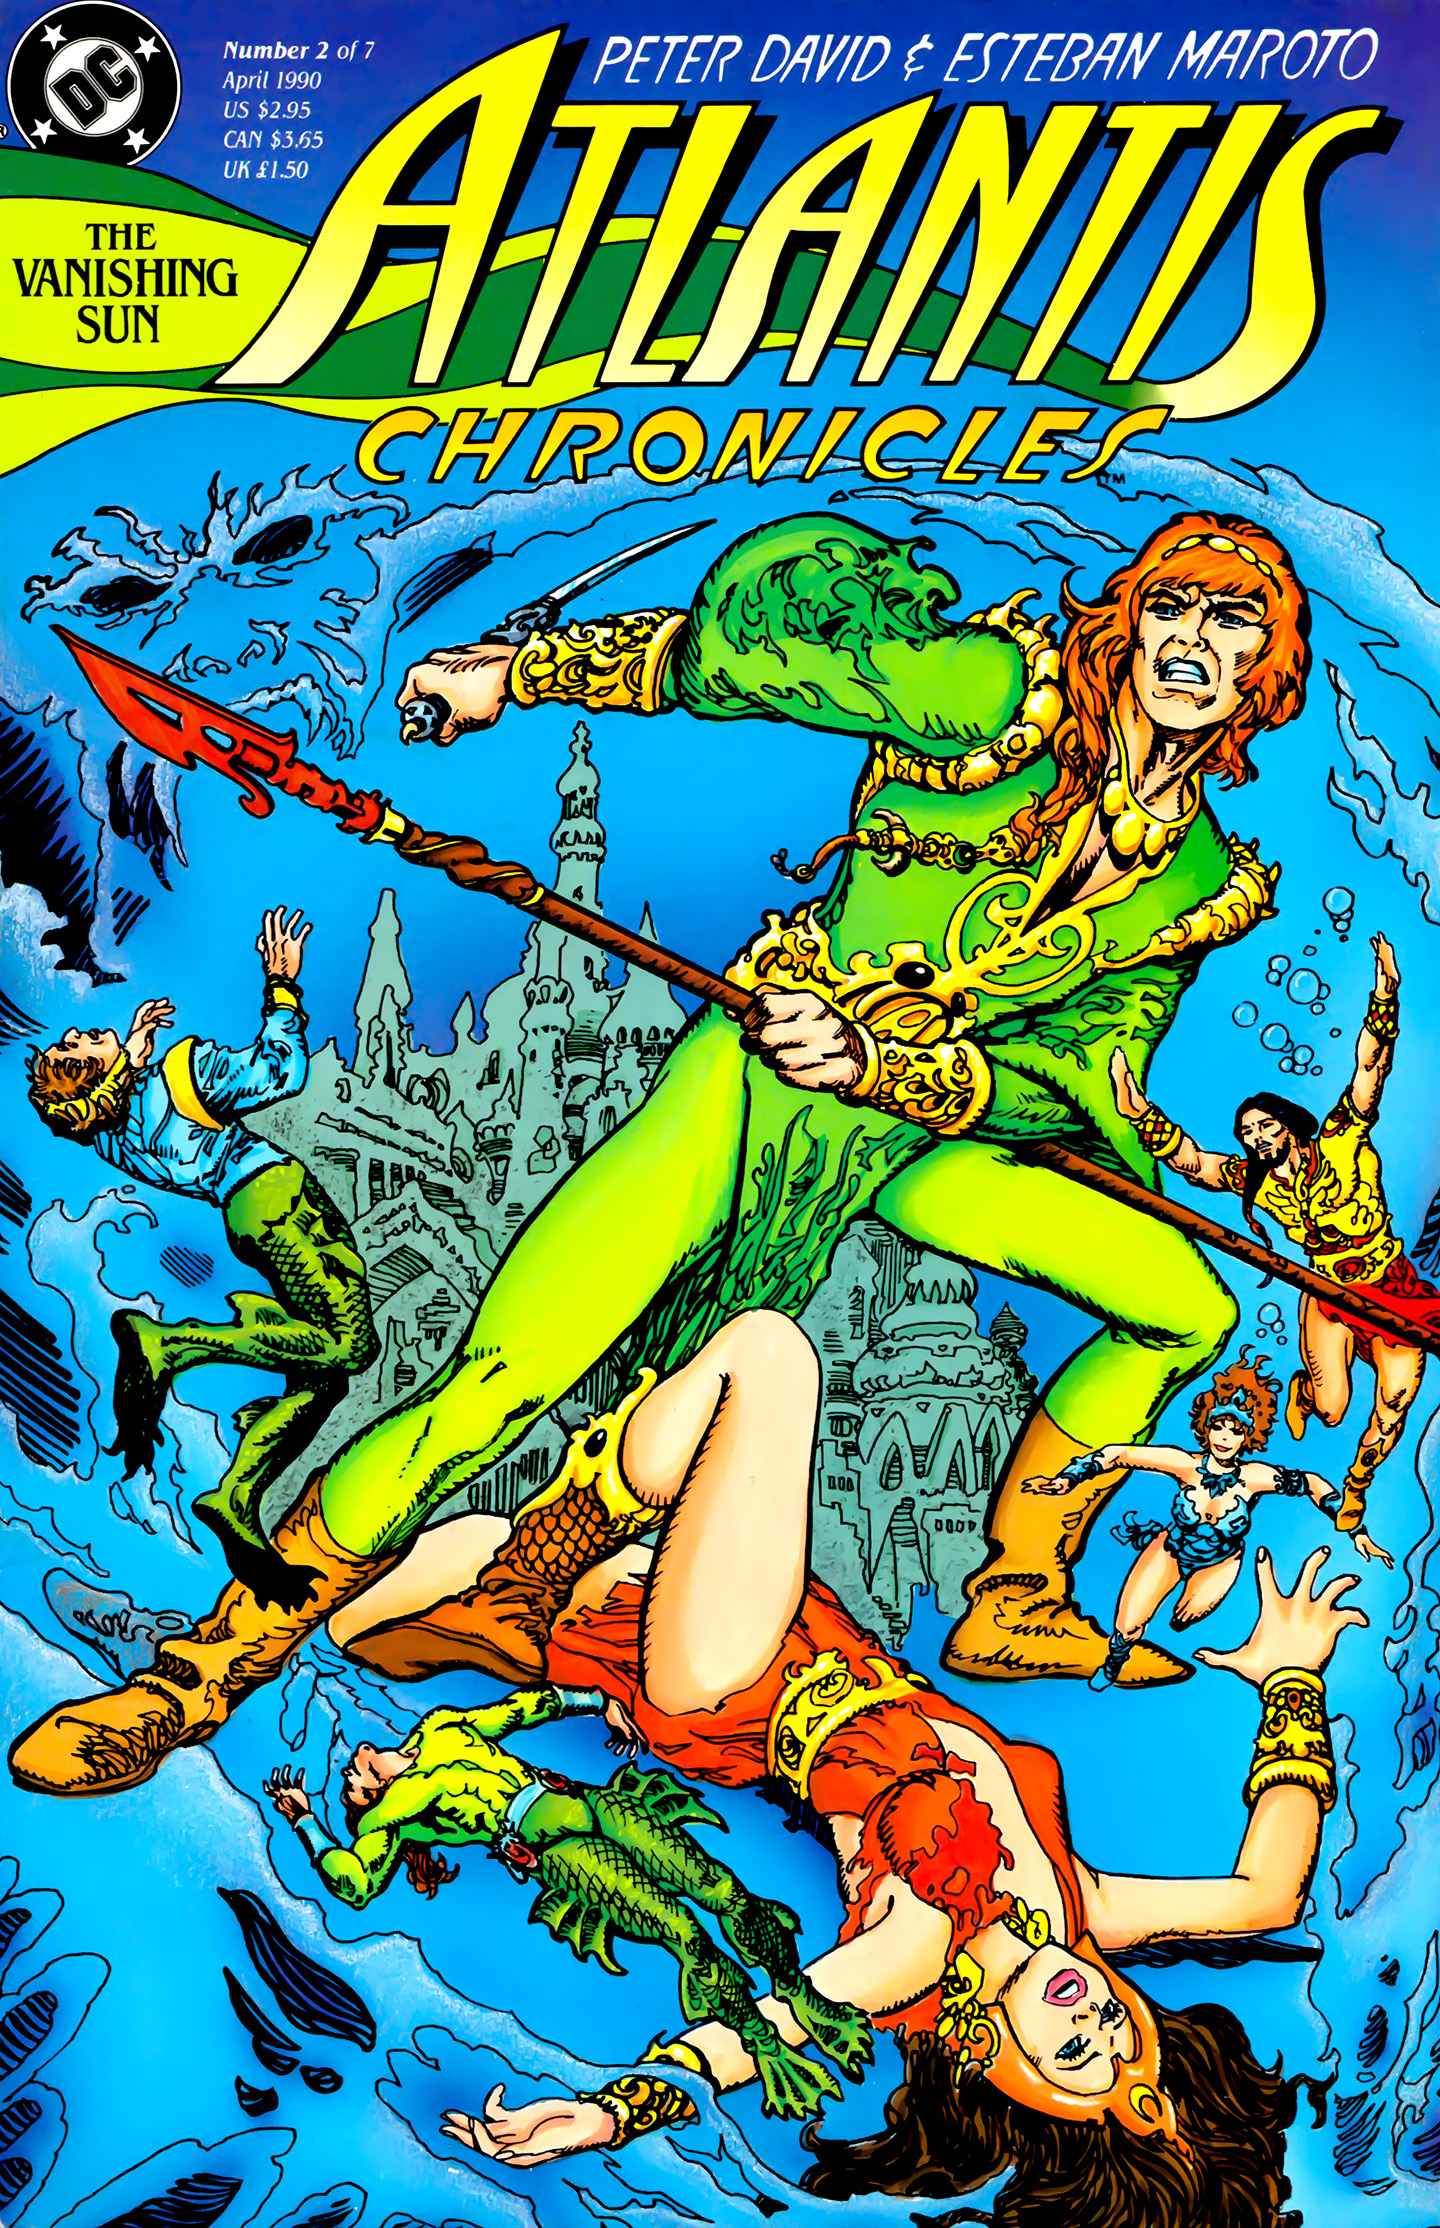 Read online Atlantis Chronicles comic -  Issue #2 - 1